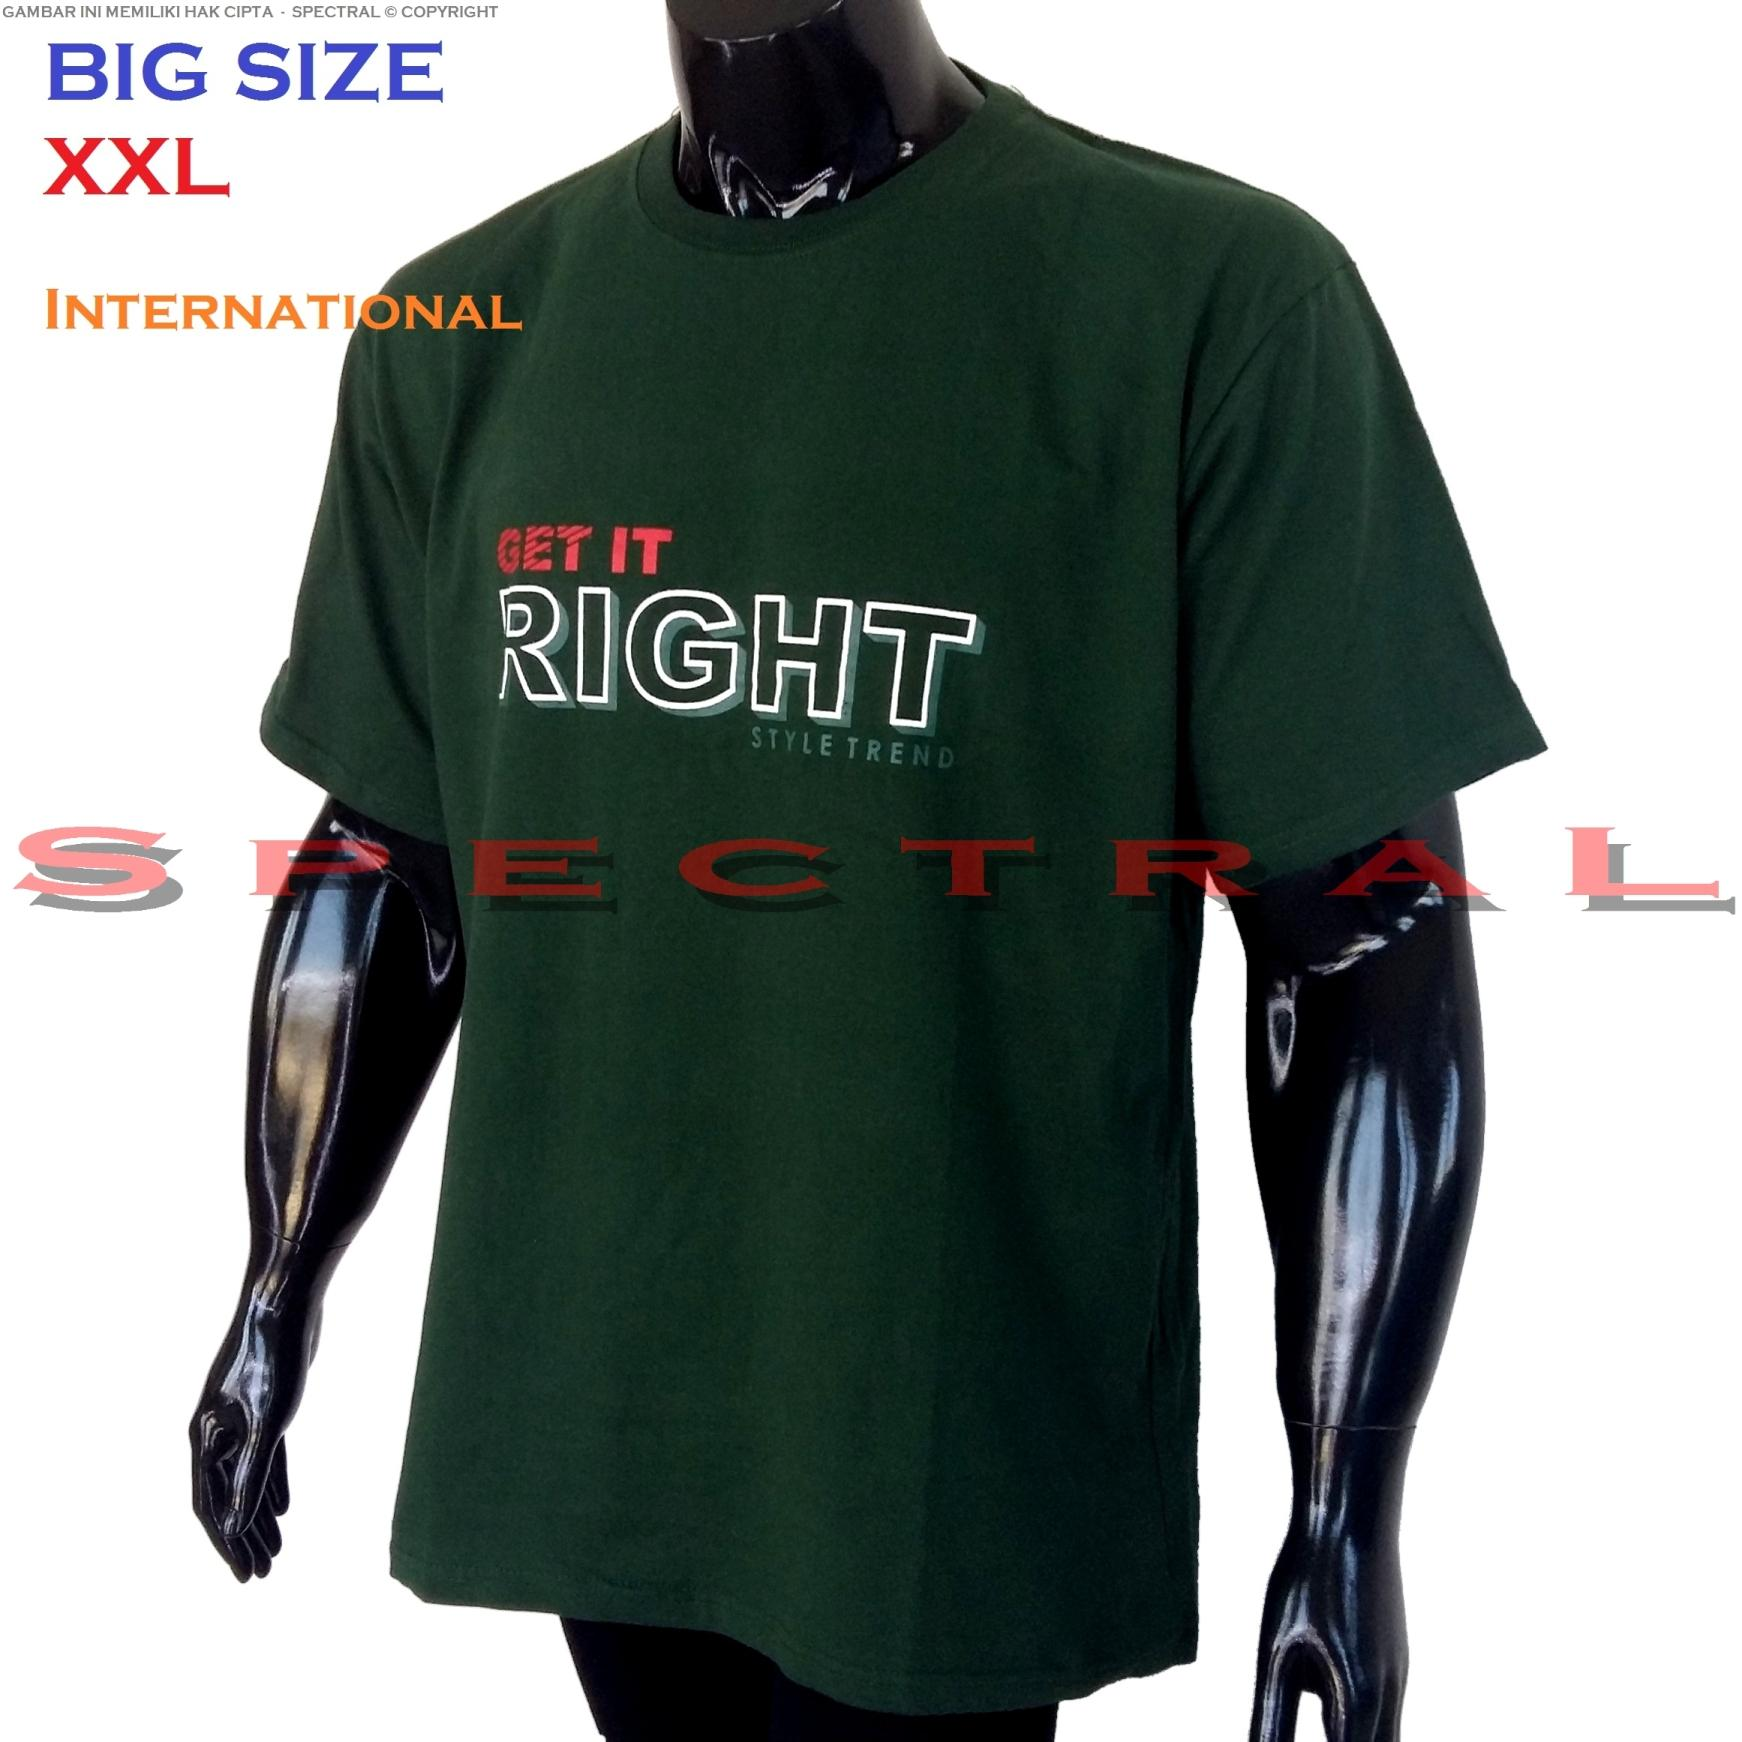 Spectral – BIG SIZE XXL INTERNATIONAL 100% Soft Cotton Combed Kaos Distro Jumbo BIGSIZE T-Shirt Fashion Ukuran Besar Polos Celana Atasan Pria Wanita Katun Bapak Orang Tua Gemuk Gendut Lengan Simple Sport Casual 2L 2XL Baju Cowo Cewe Pakaian Terbaru